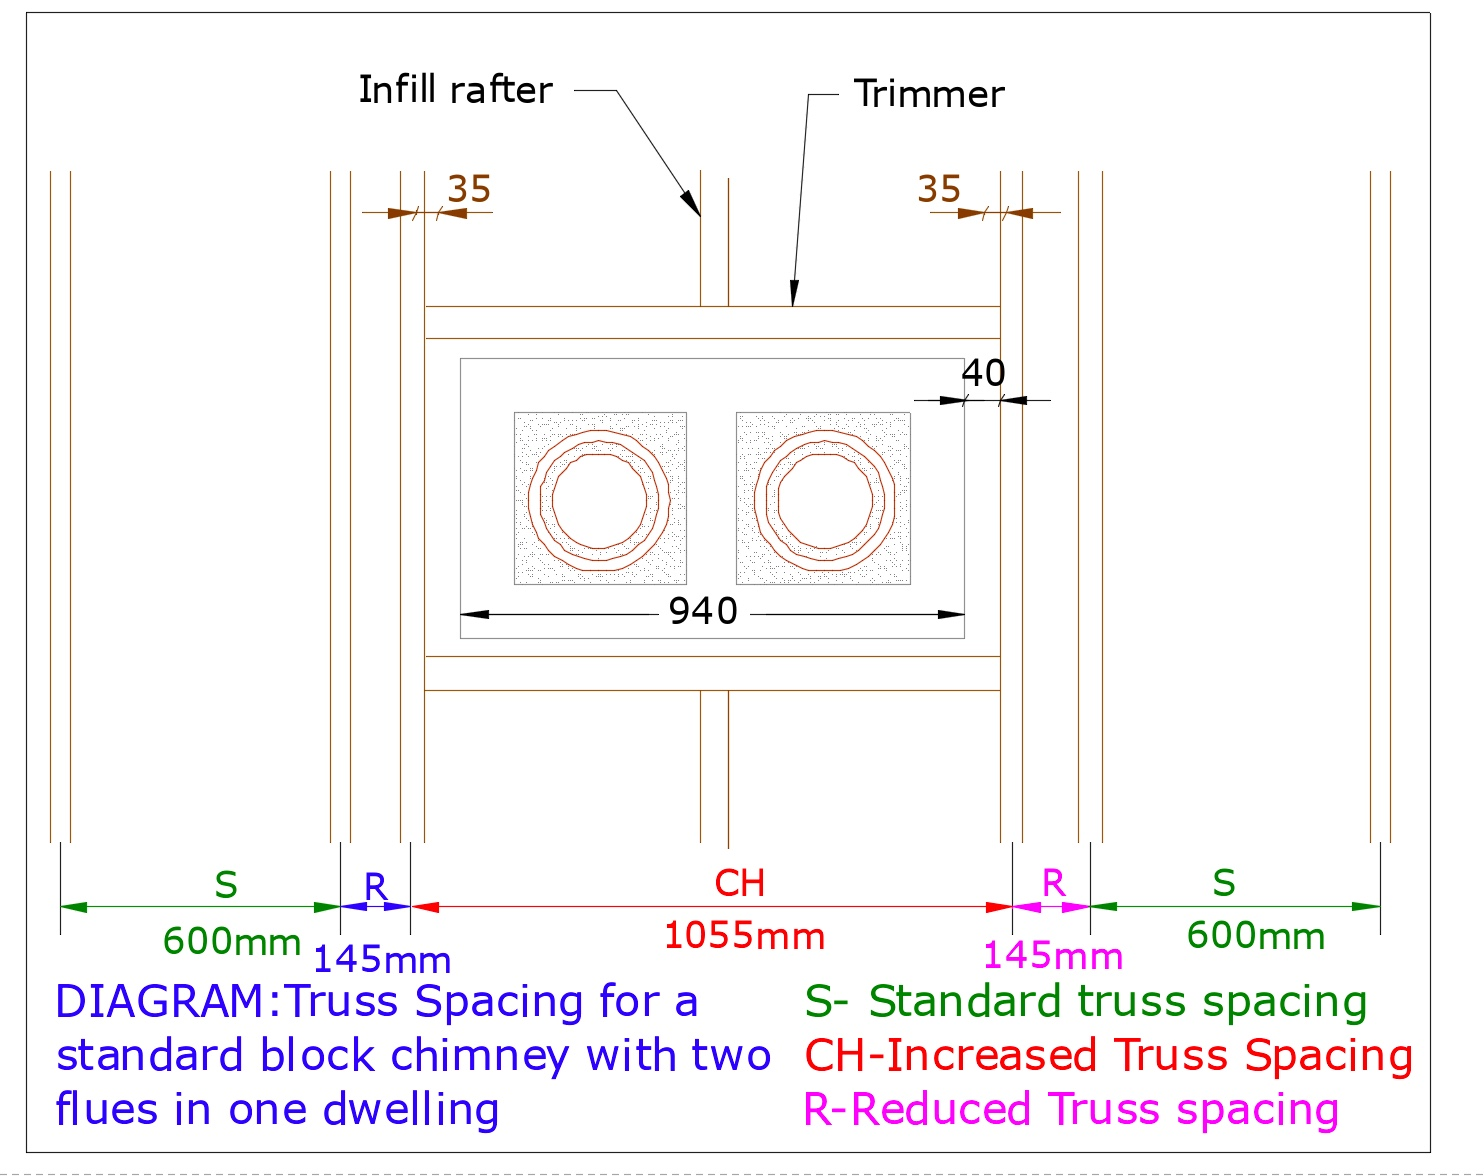 DIAGRAM D17(a) Chimney two flues